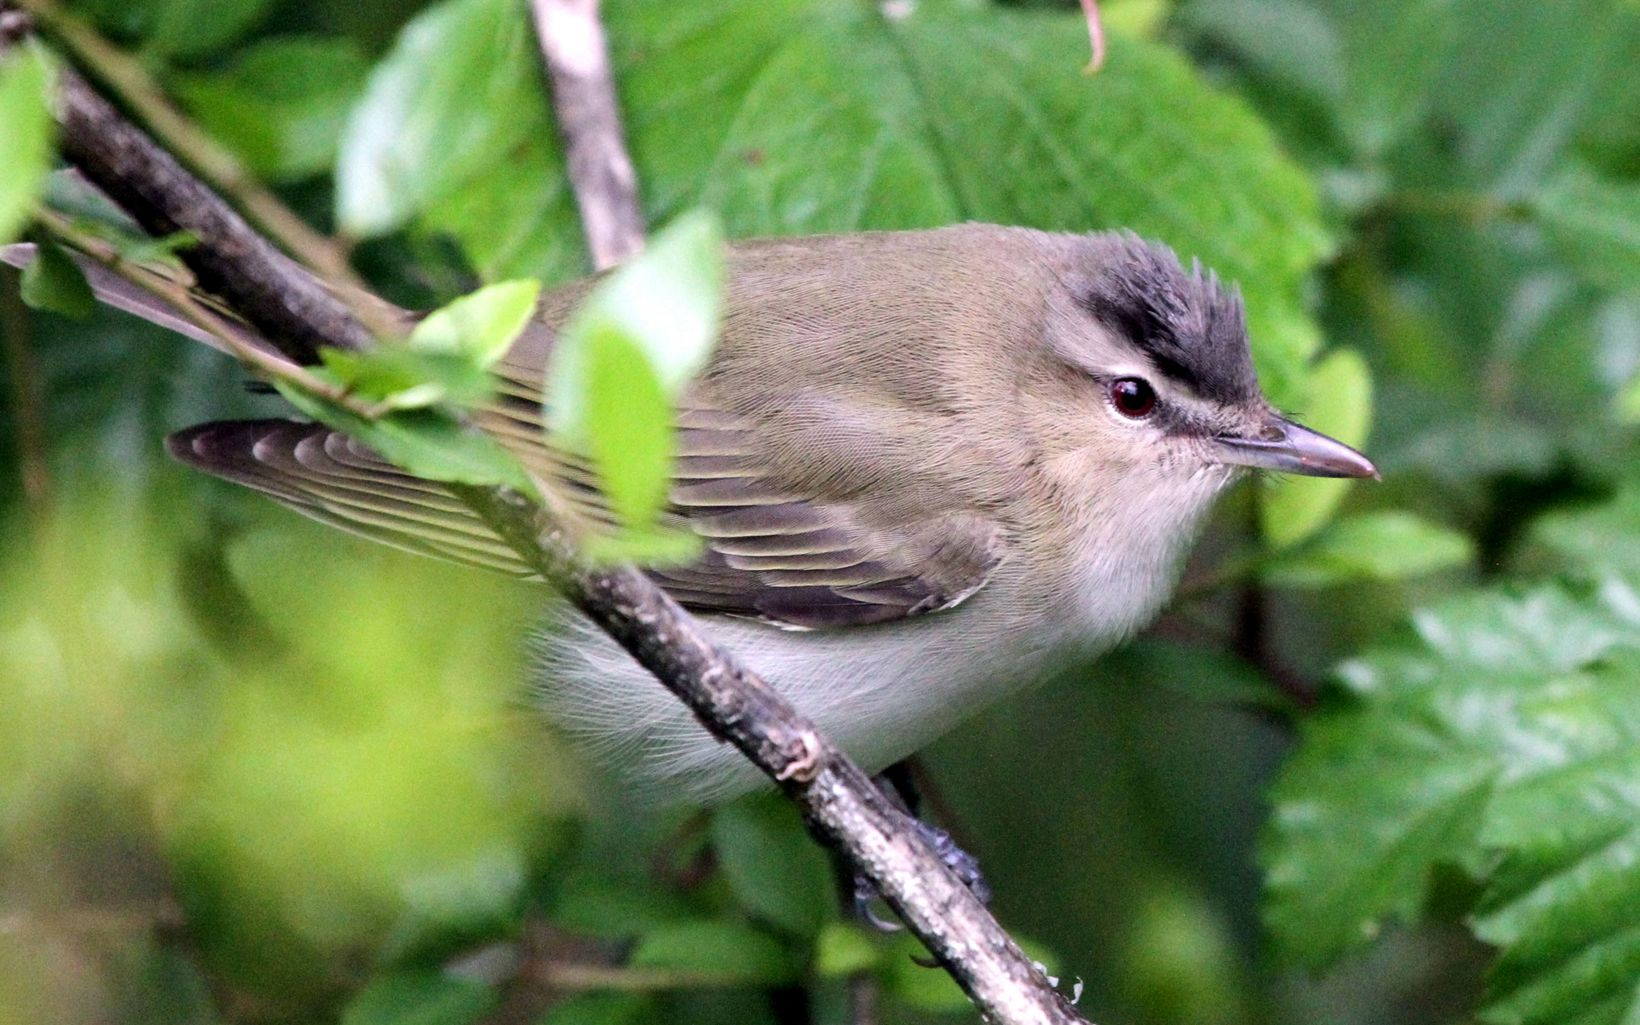 A fluffy gray bird rests in a branch.